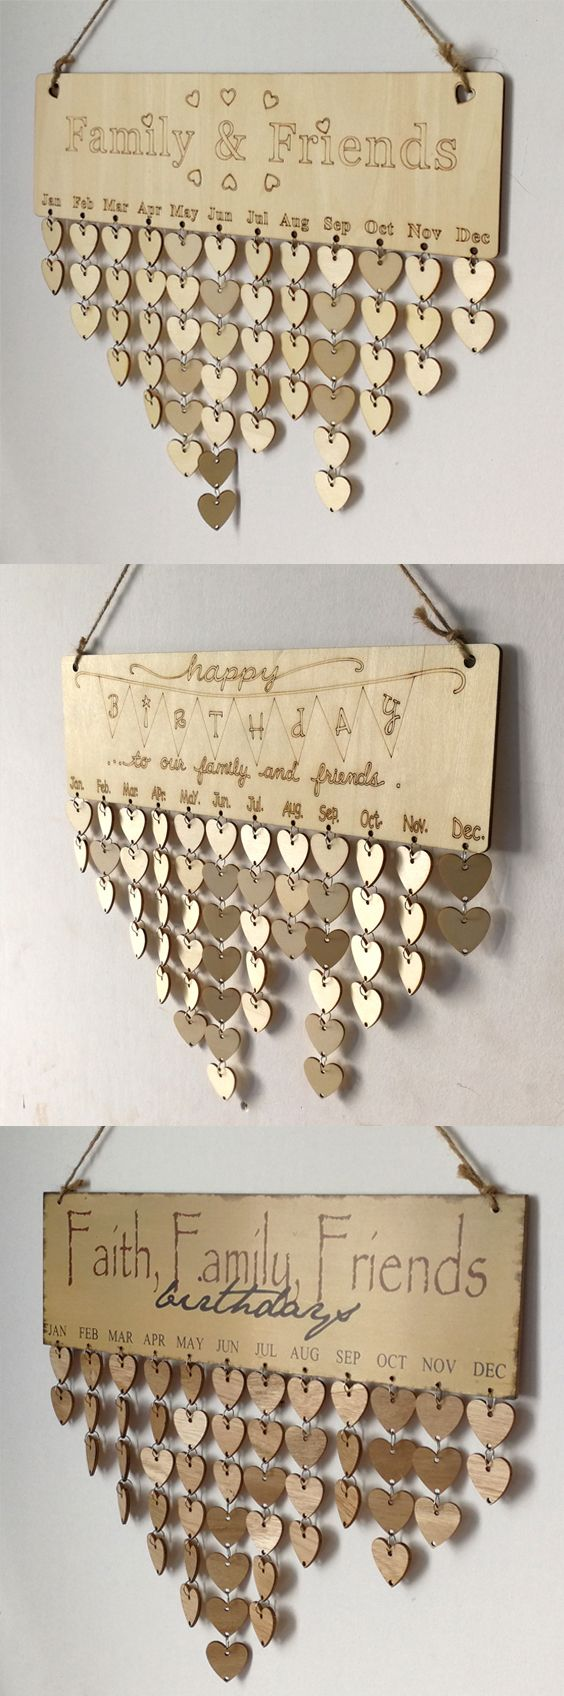 Family birthday and anniversary dates. A great gift for grandparents, parents, or a sibling.